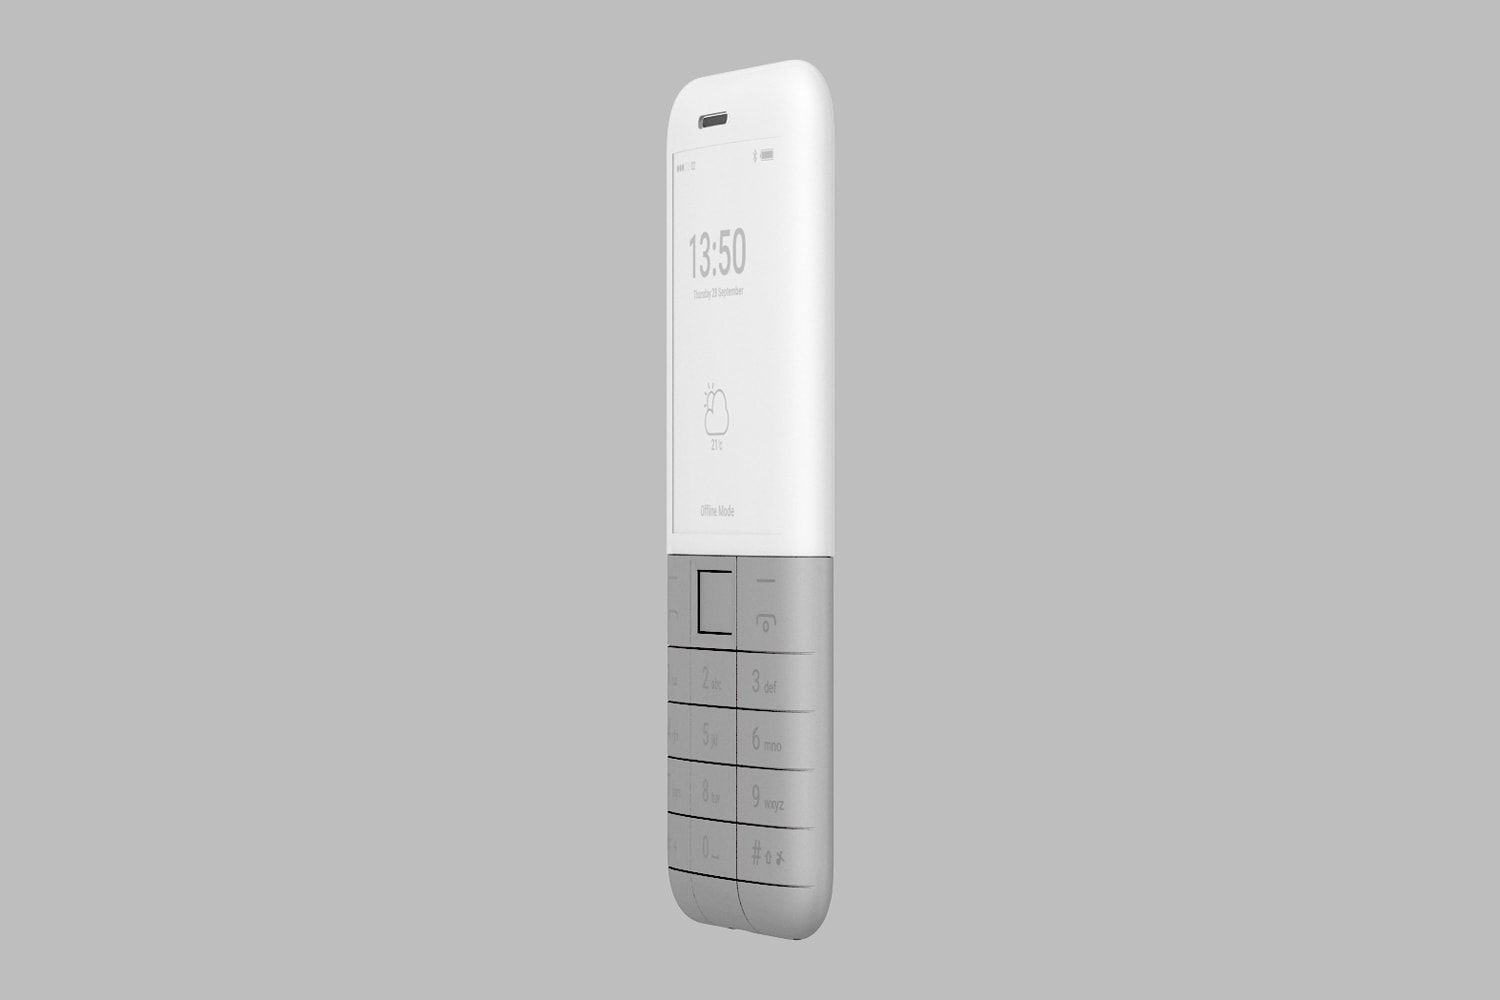 Blond Industrial Design Studio London Offline Phone.